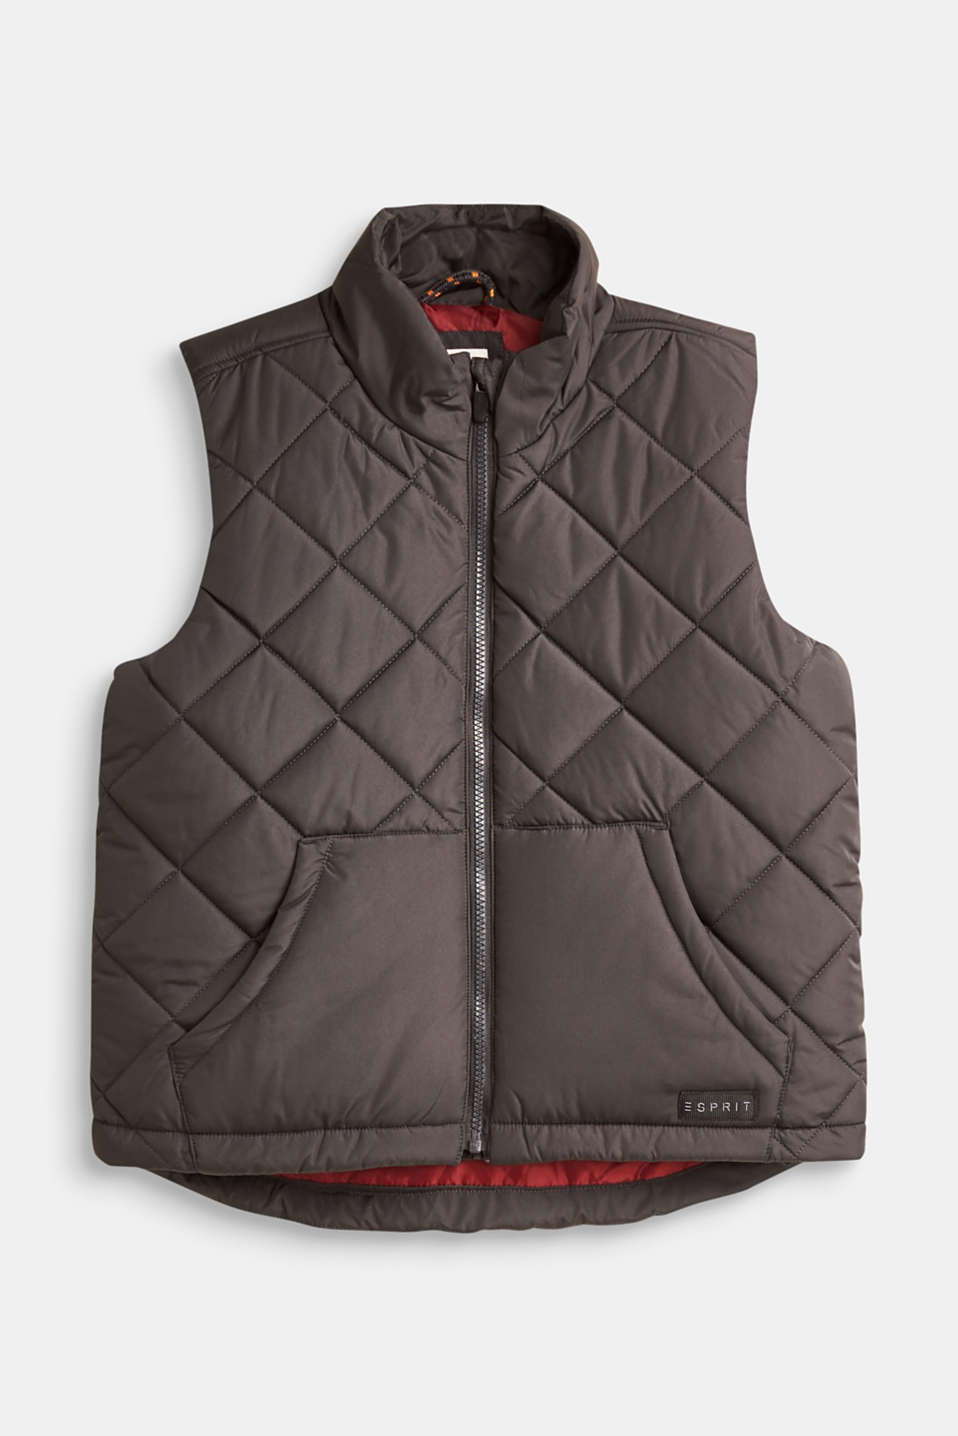 Esprit - Lightweight quilted bodywarmer with kangaroo pockets